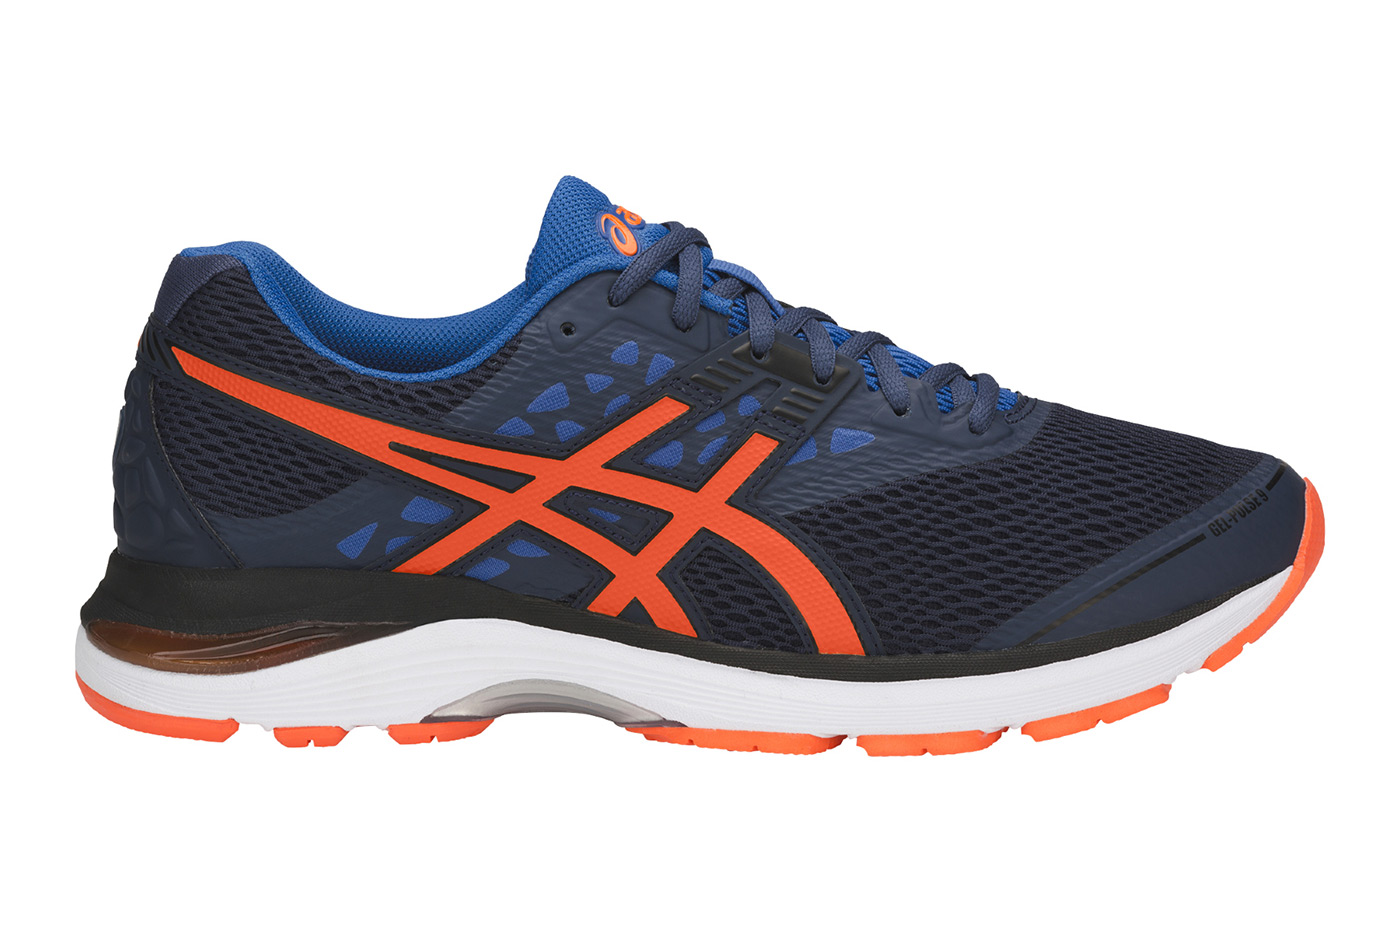 ASICS GEL PULSE 9 Chaussures de running asics